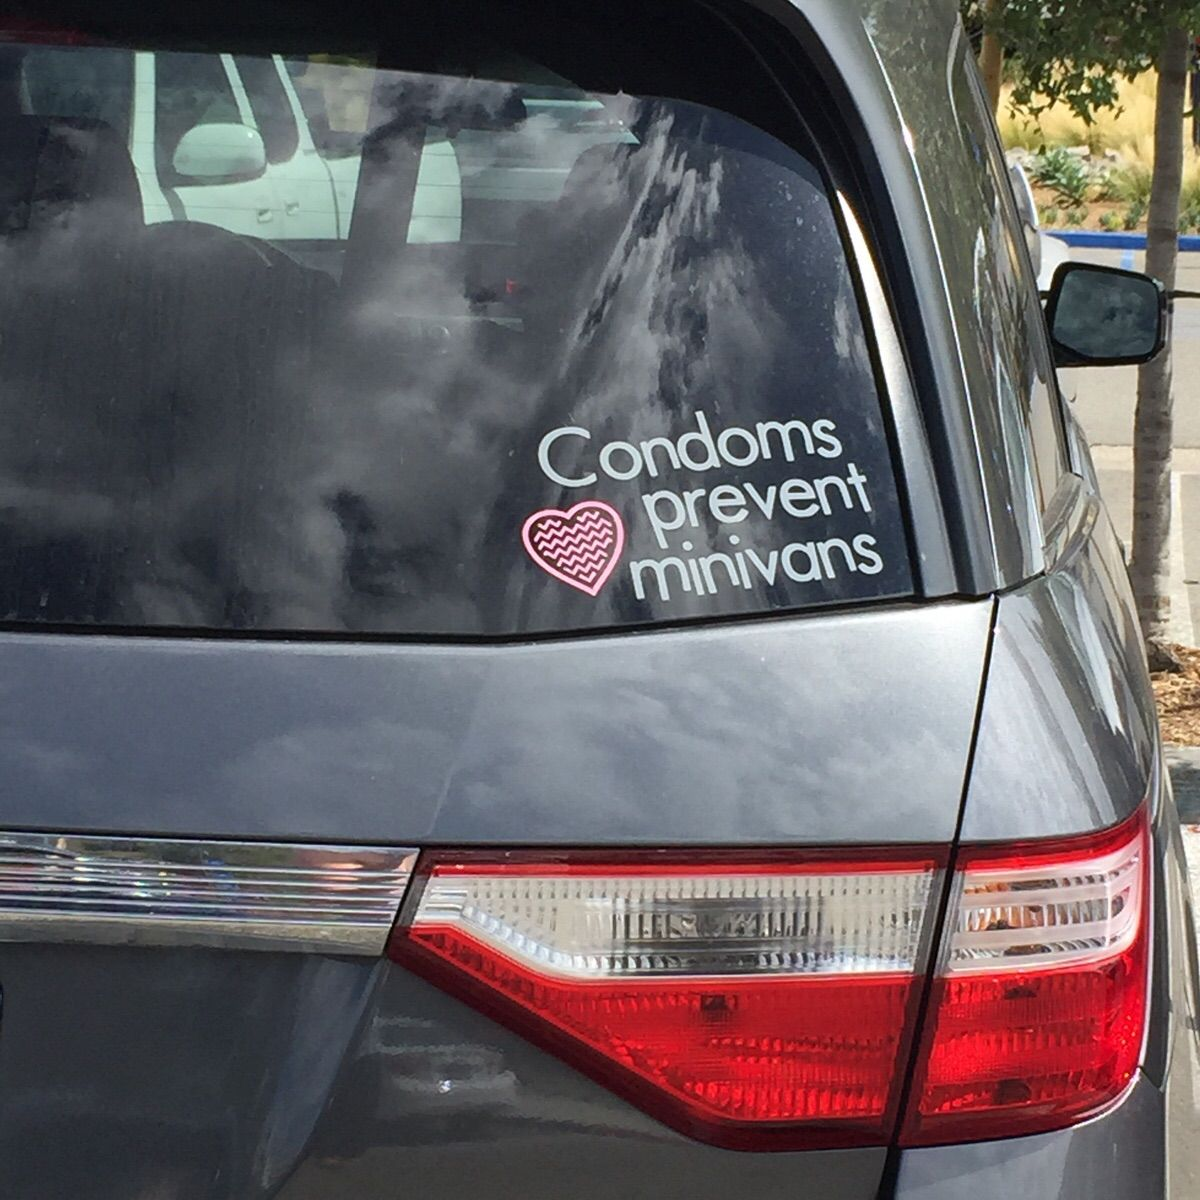 This sticker on a minivan. Much more great.